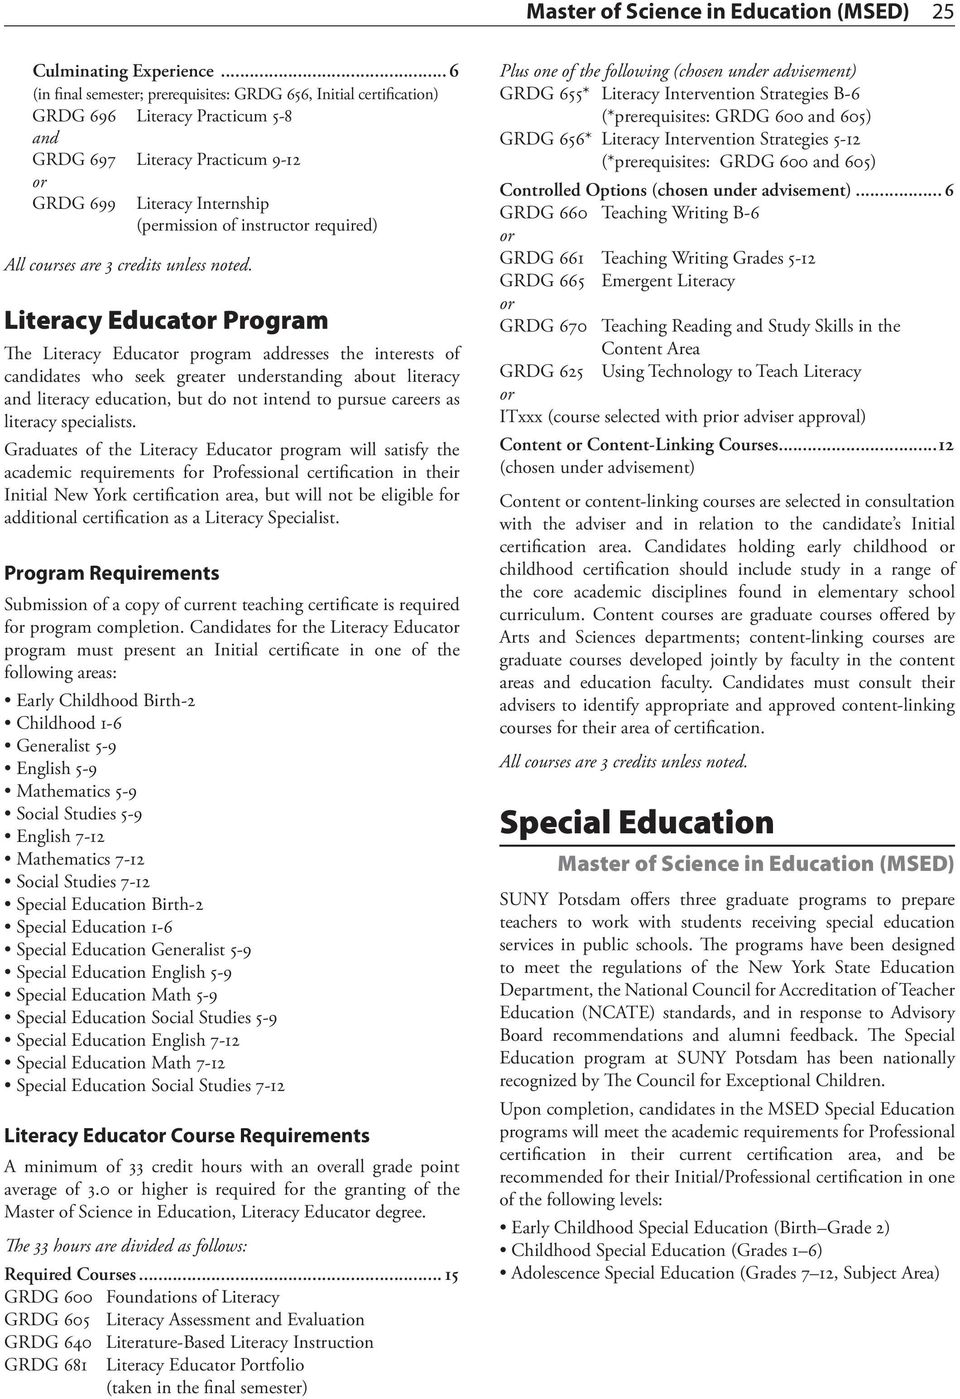 required) Literacy Educat Program The Literacy Educat program addresses the interests of candidates who seek greater understanding about literacy and literacy education, but do not intend to pursue